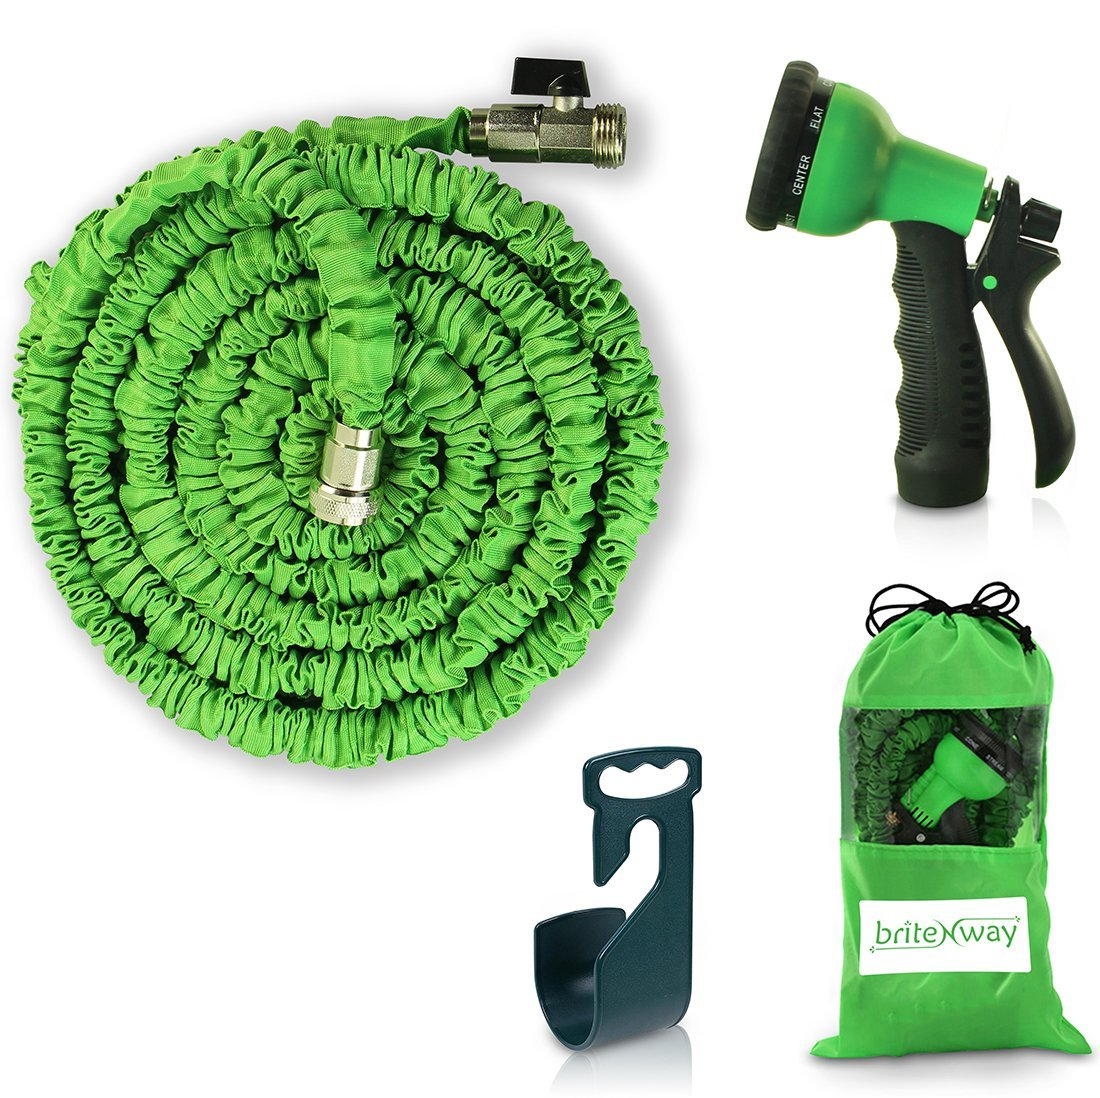 Expandable Garden Hose - 50 ft. Retractable, Lightweight & Flexible - 8 Pattern Function WateringNozzle Gardening Spray Included - Enhanced Brass Fitting Connectors - Free Hanger & Storage Holder